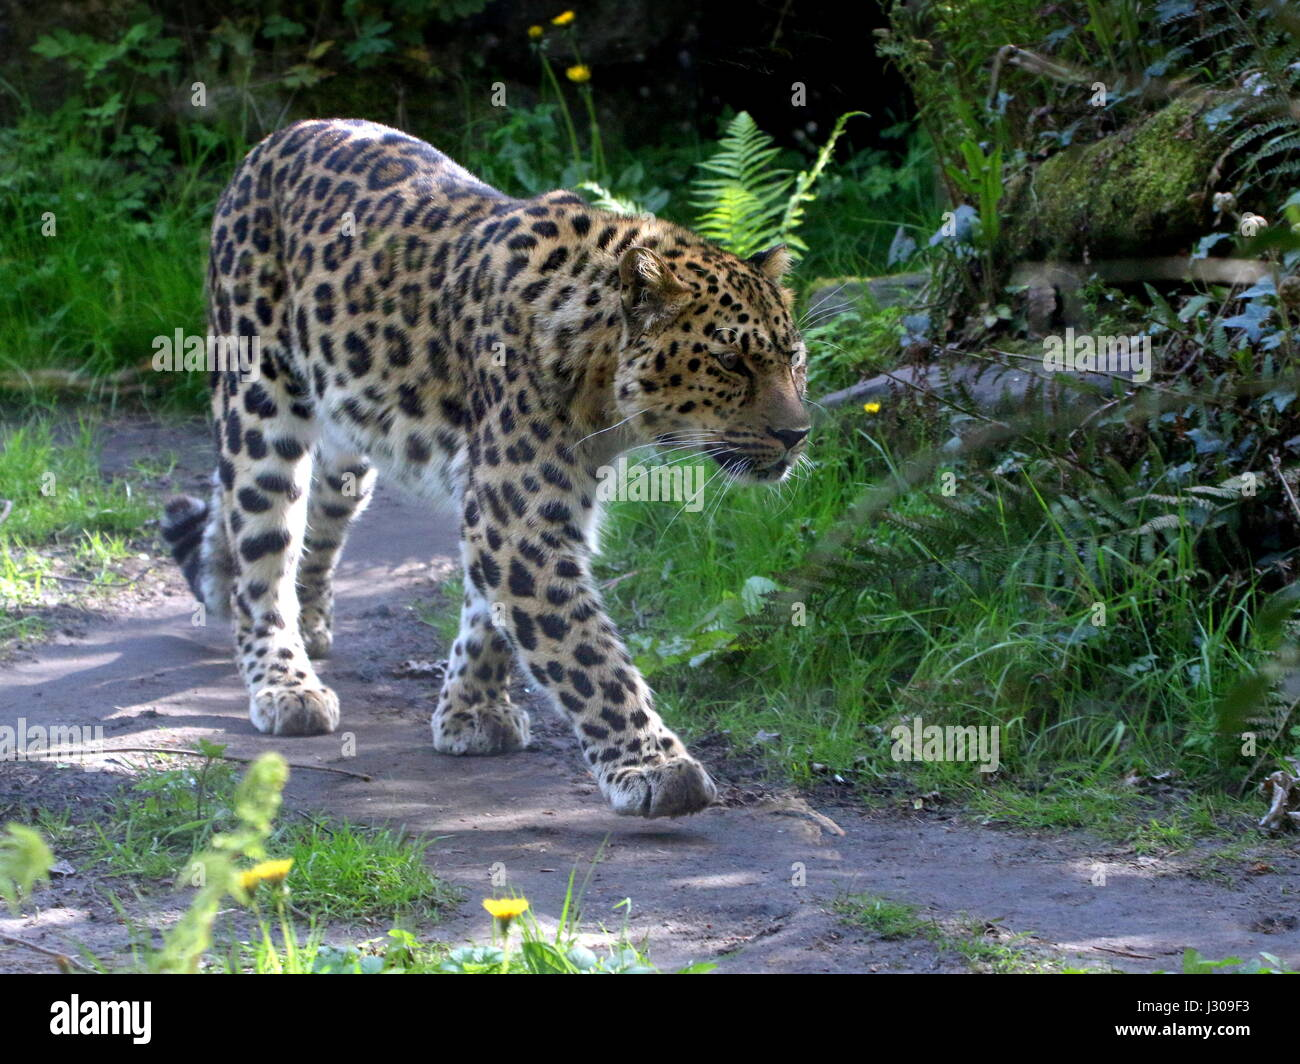 Amur or Far Eastern Leopard (Panthera pardus orientalis) on the prowl. Found in eastern Siberia and NE China and - Stock Image